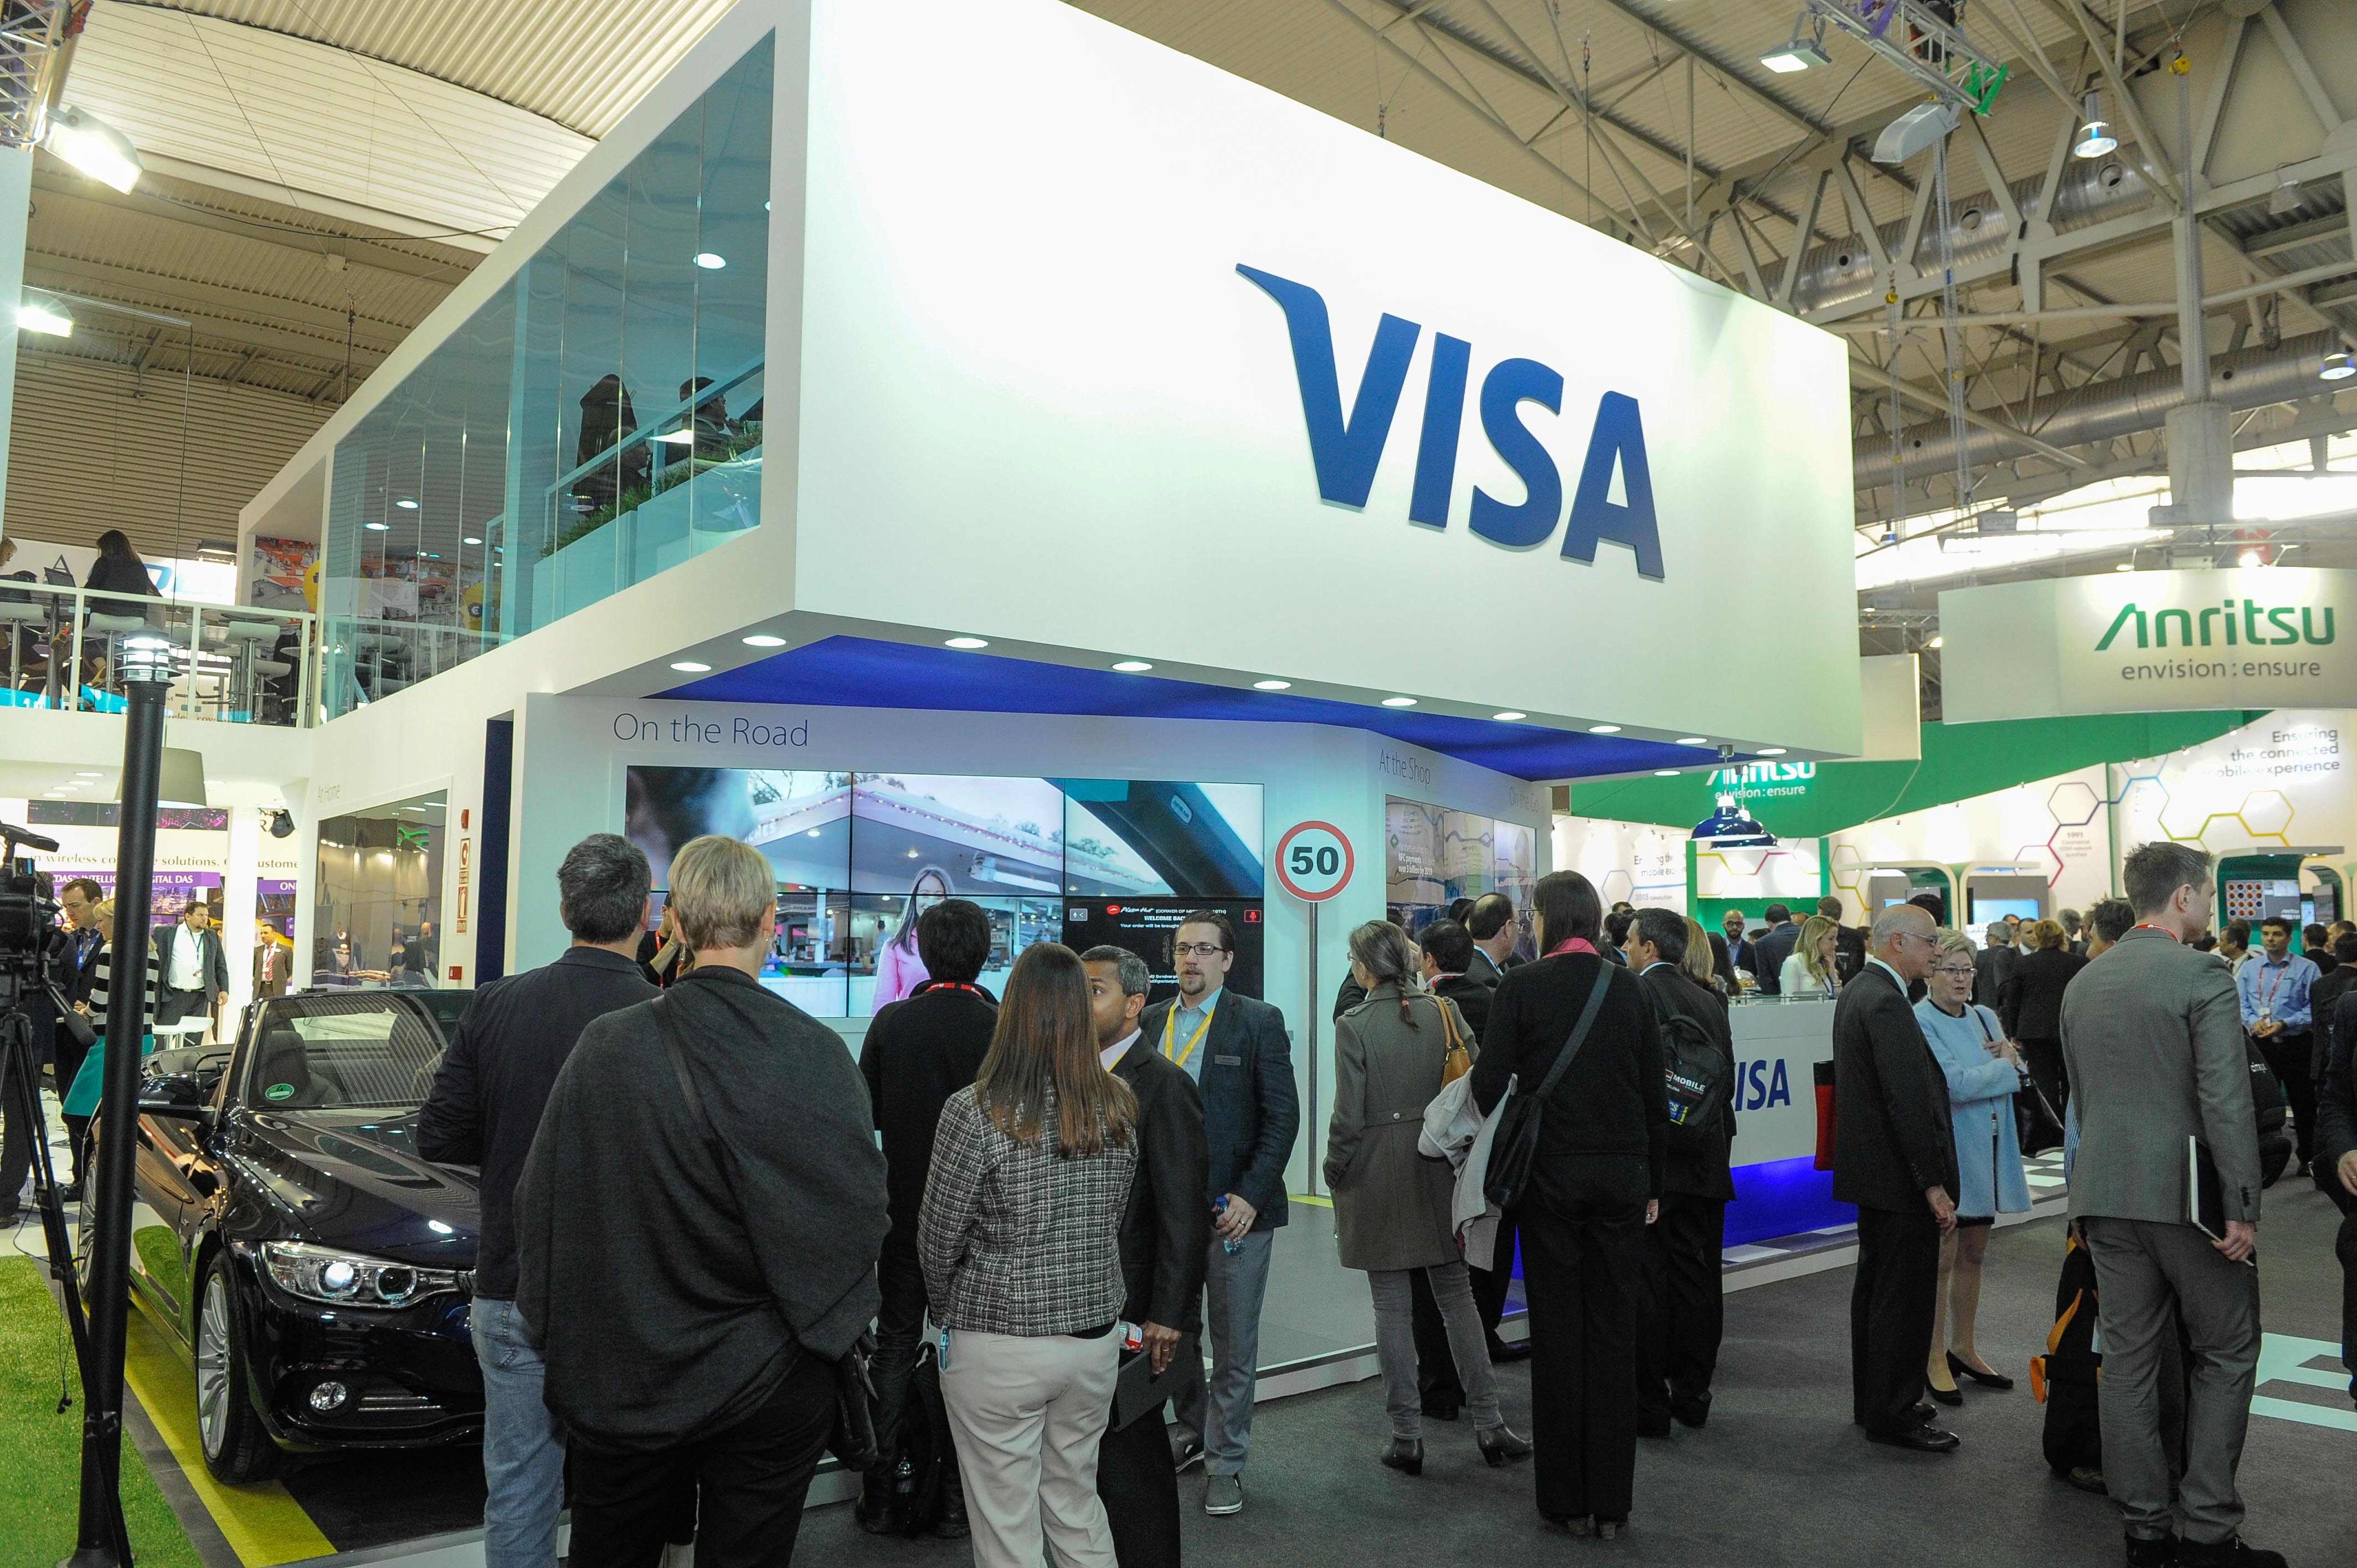 Visa Unveils Partnerships for Mobile Payments and Connected Cars